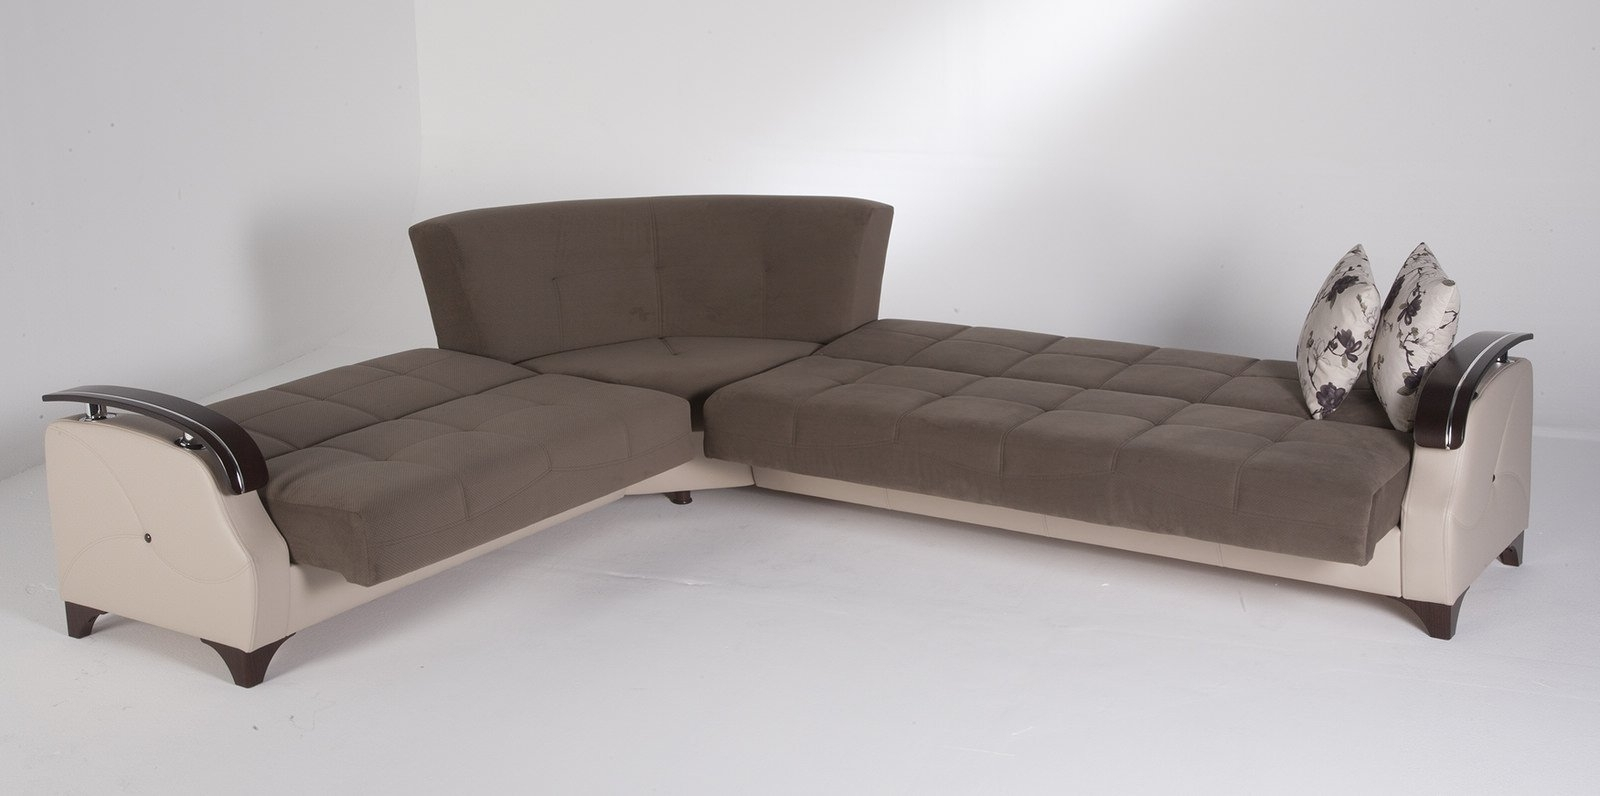 Trento Selen Brown Sectional Sofasunset Pertaining To Famous Sectional Sofas With Queen Size Sleeper (View 9 of 20)